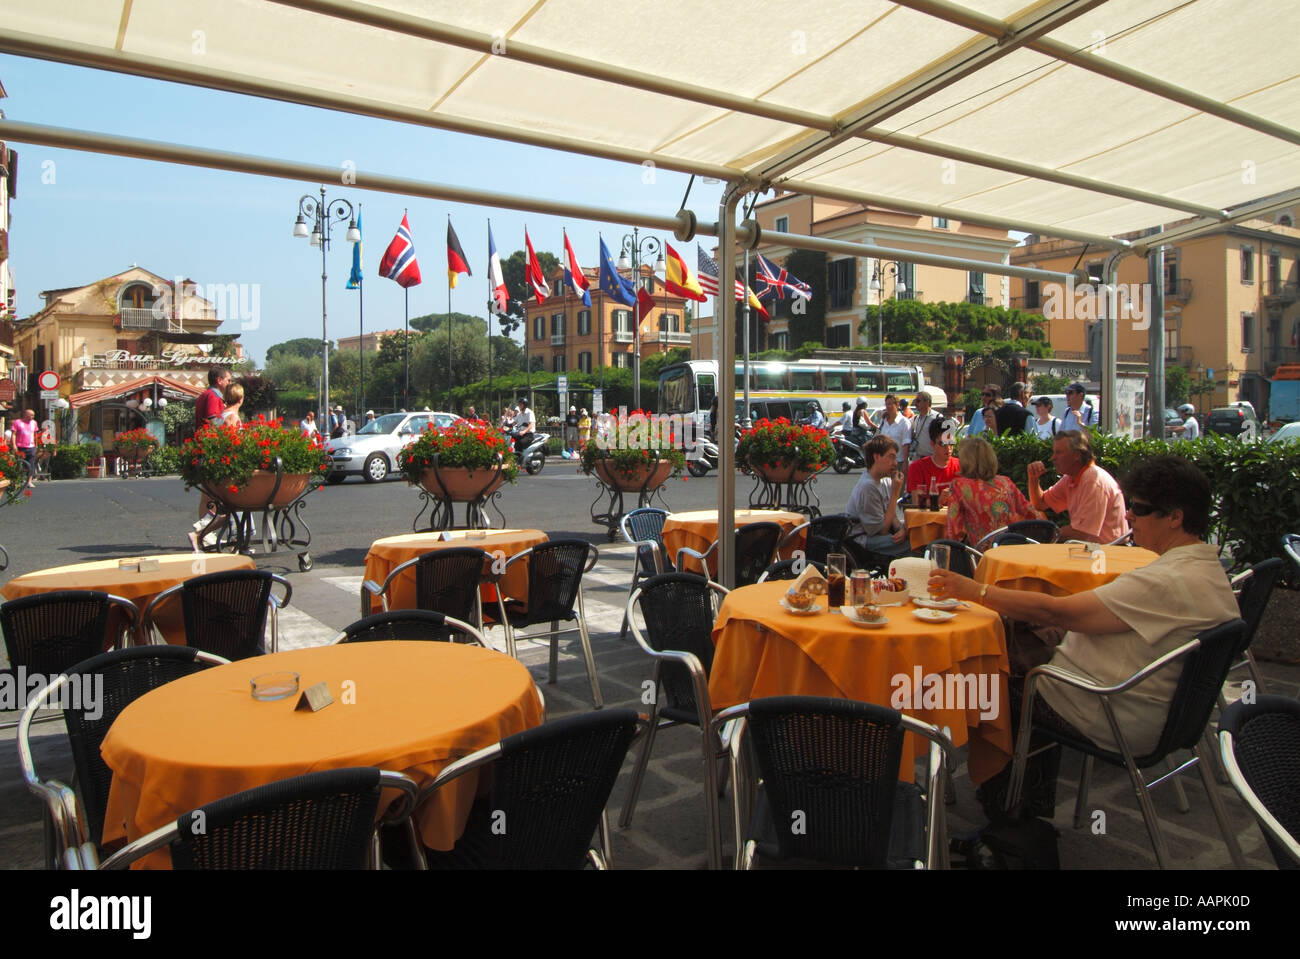 Sorrento resort Tasso Square tourists at pavement bar tables with drinks floral display traffic and flags flying - Stock Image